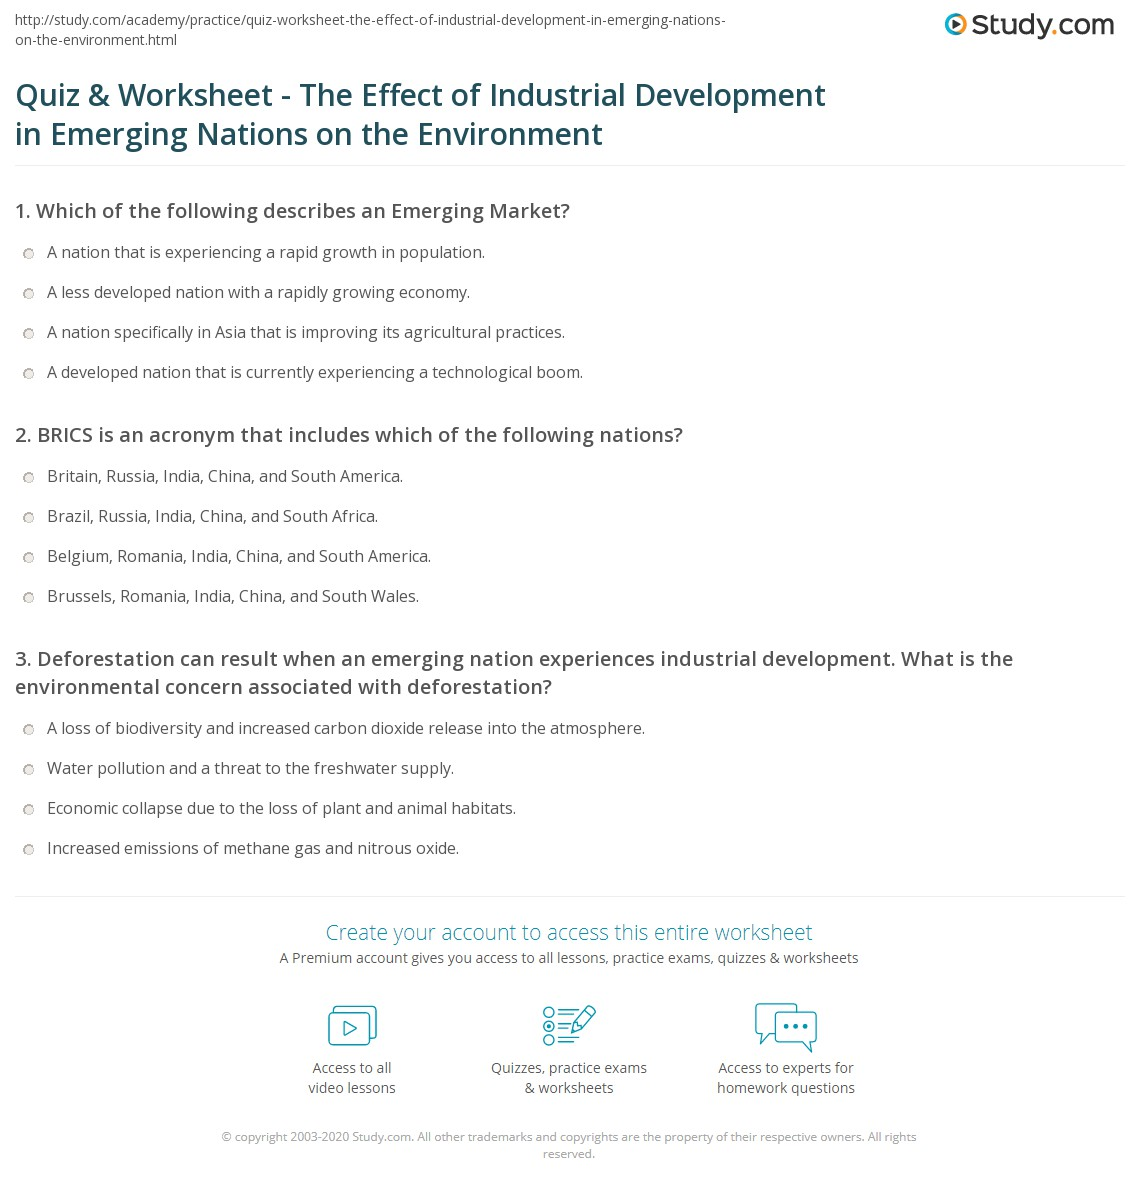 Quiz & Worksheet The Effect of Industrial Development in